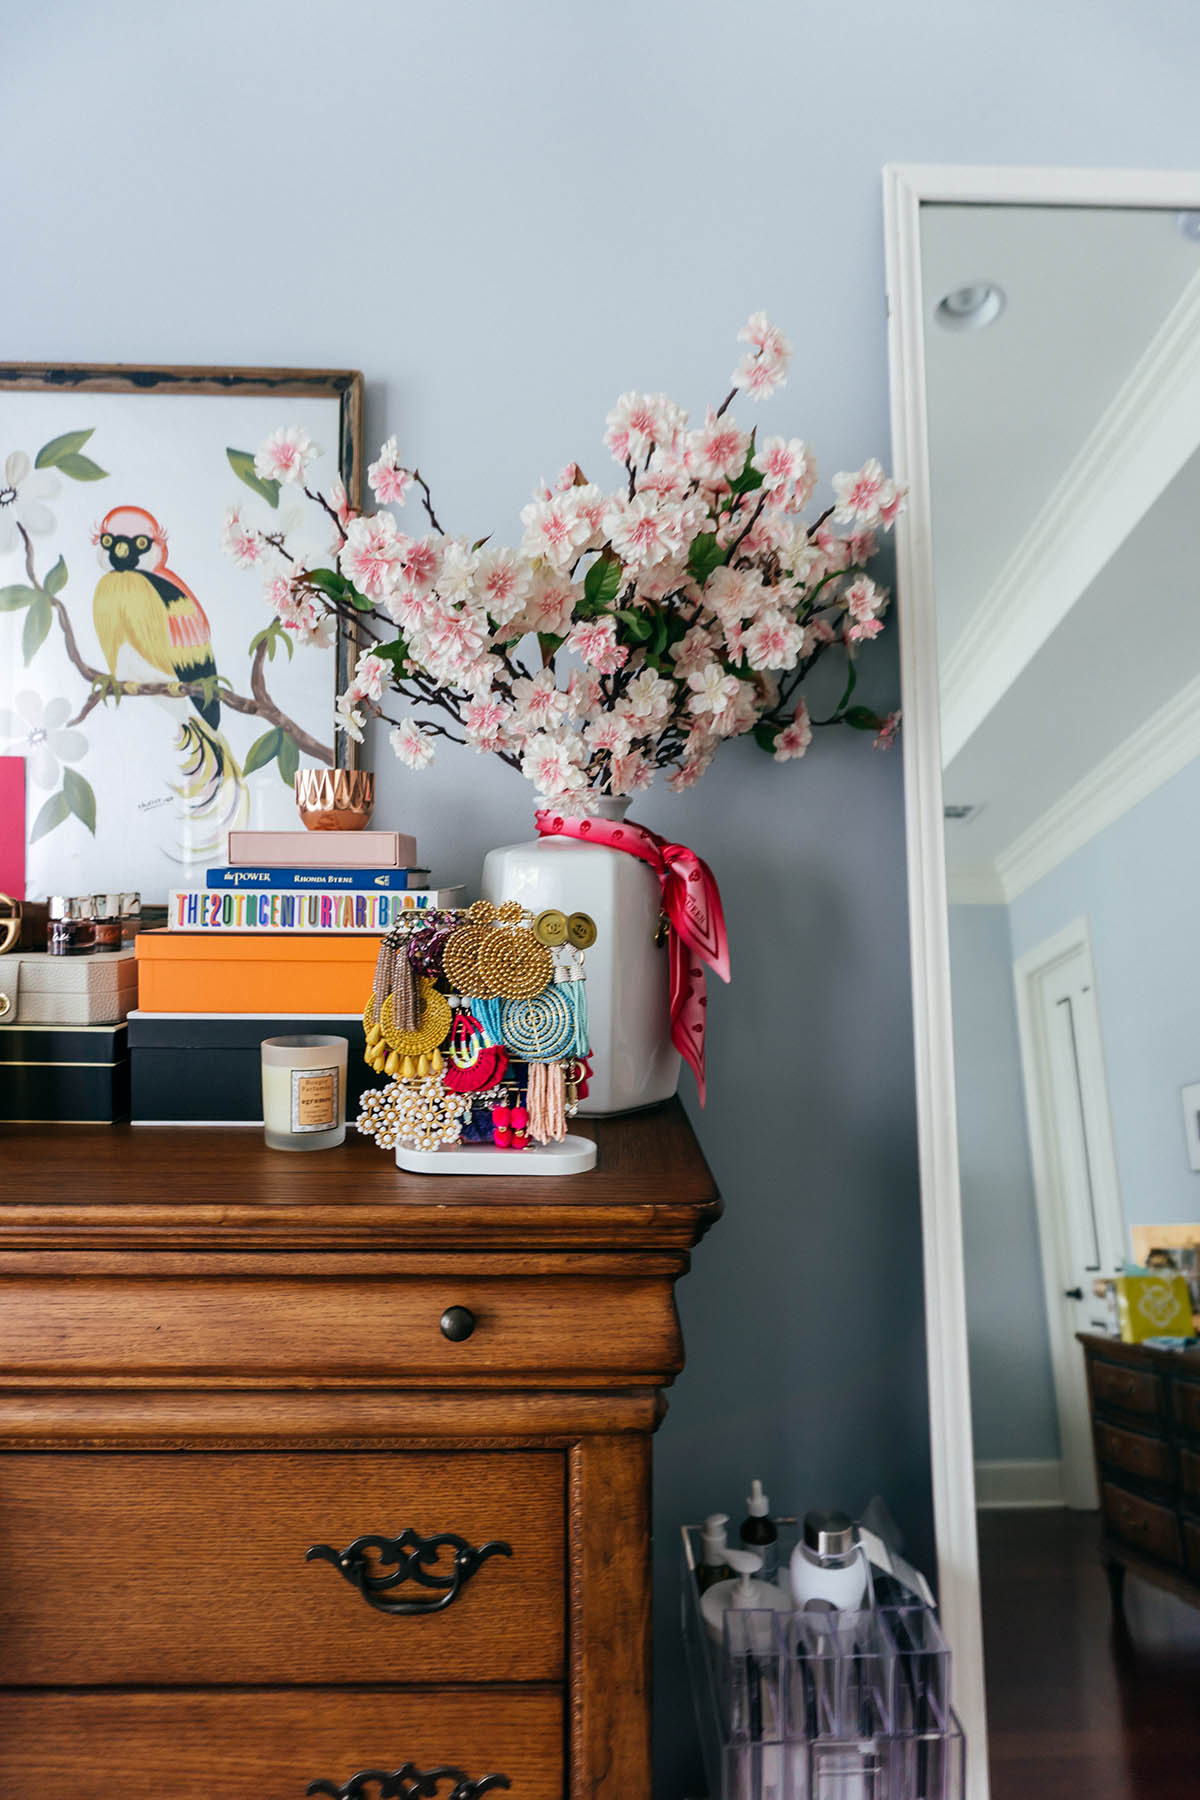 Master Bedroom Inspiration   How to Create a Space For Positivity   Pretty Bedroom Organization Ideas